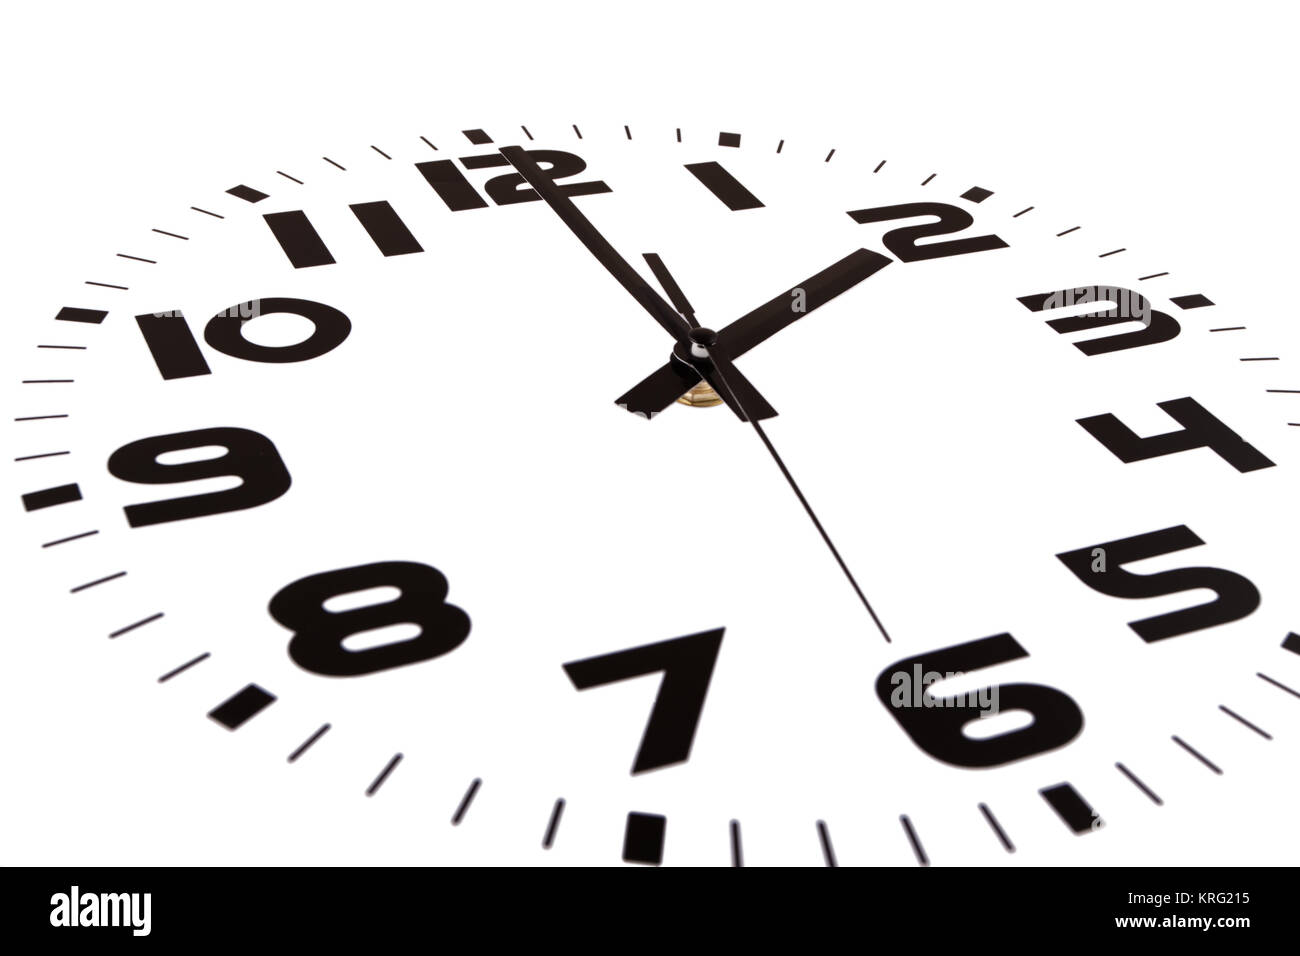 Clock isolated on white marking the two o'clock hour. The main focus is in the hour hand. Stock Photo